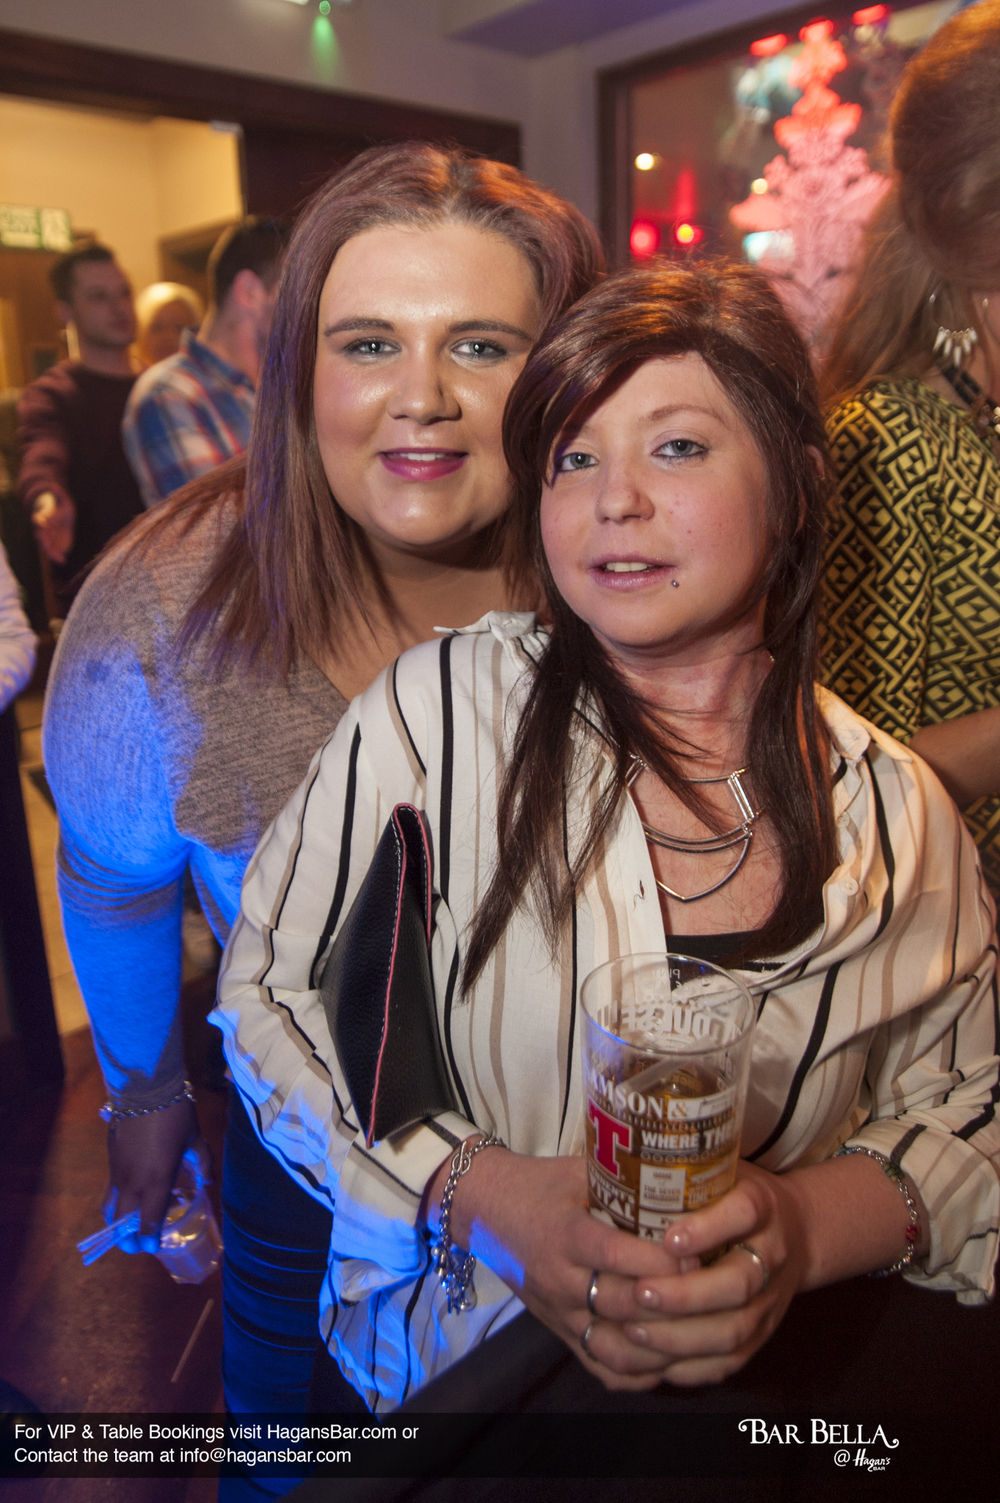 20160228-Hagans Feb 26-27th 2016 DNG-7576.jpg